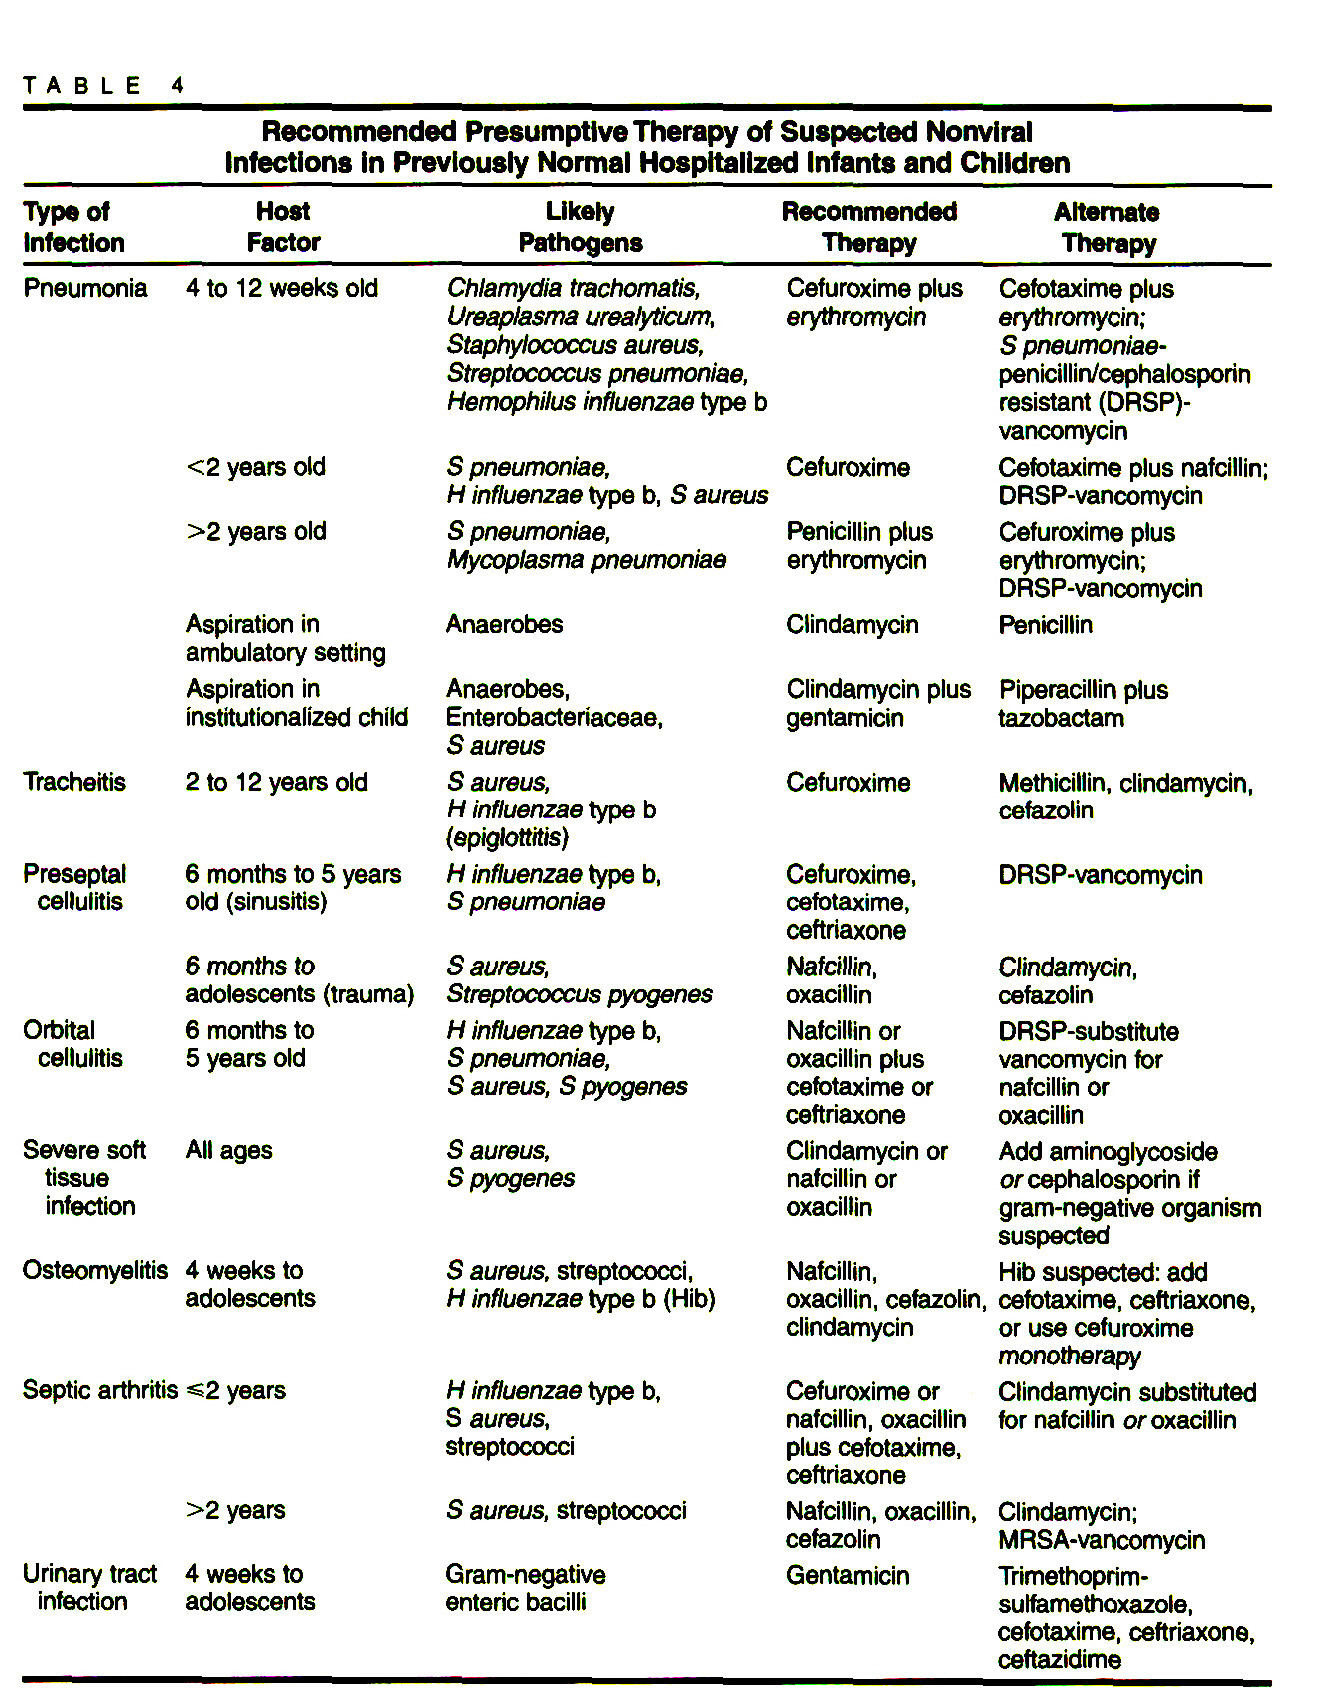 TABLE 4Recommended Presumptive Therapy of Suspected Nonviral Infections in Previously Normal Hospitalized Infants and Children